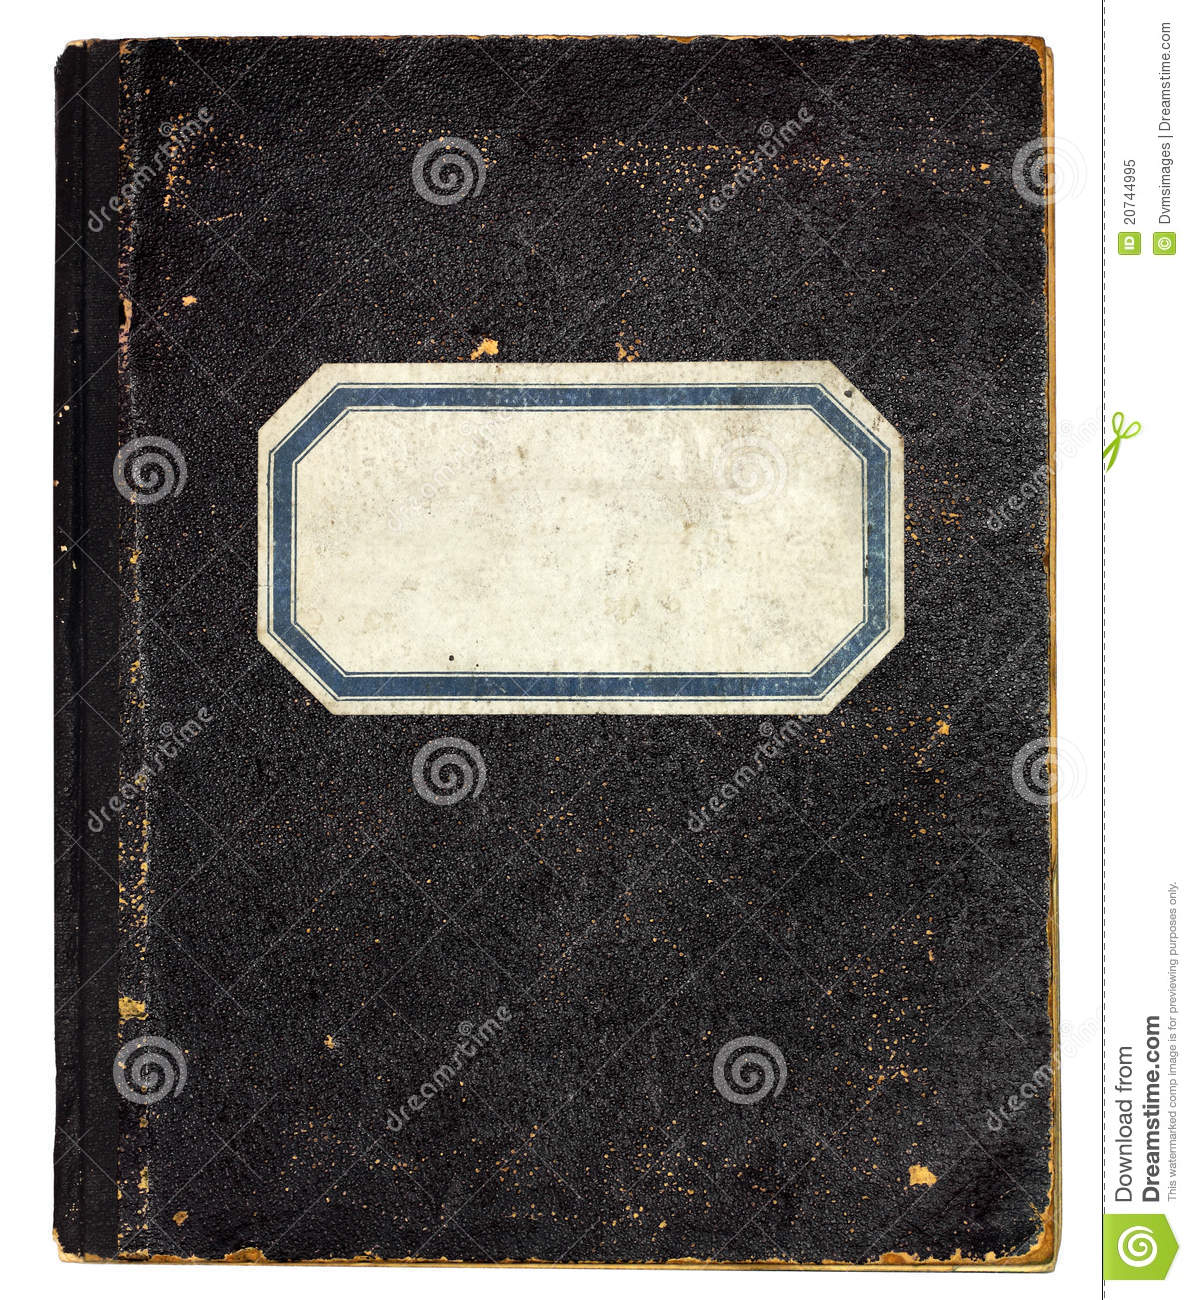 House Front Design: Old Notebook Cover Royalty Free Stock Photo